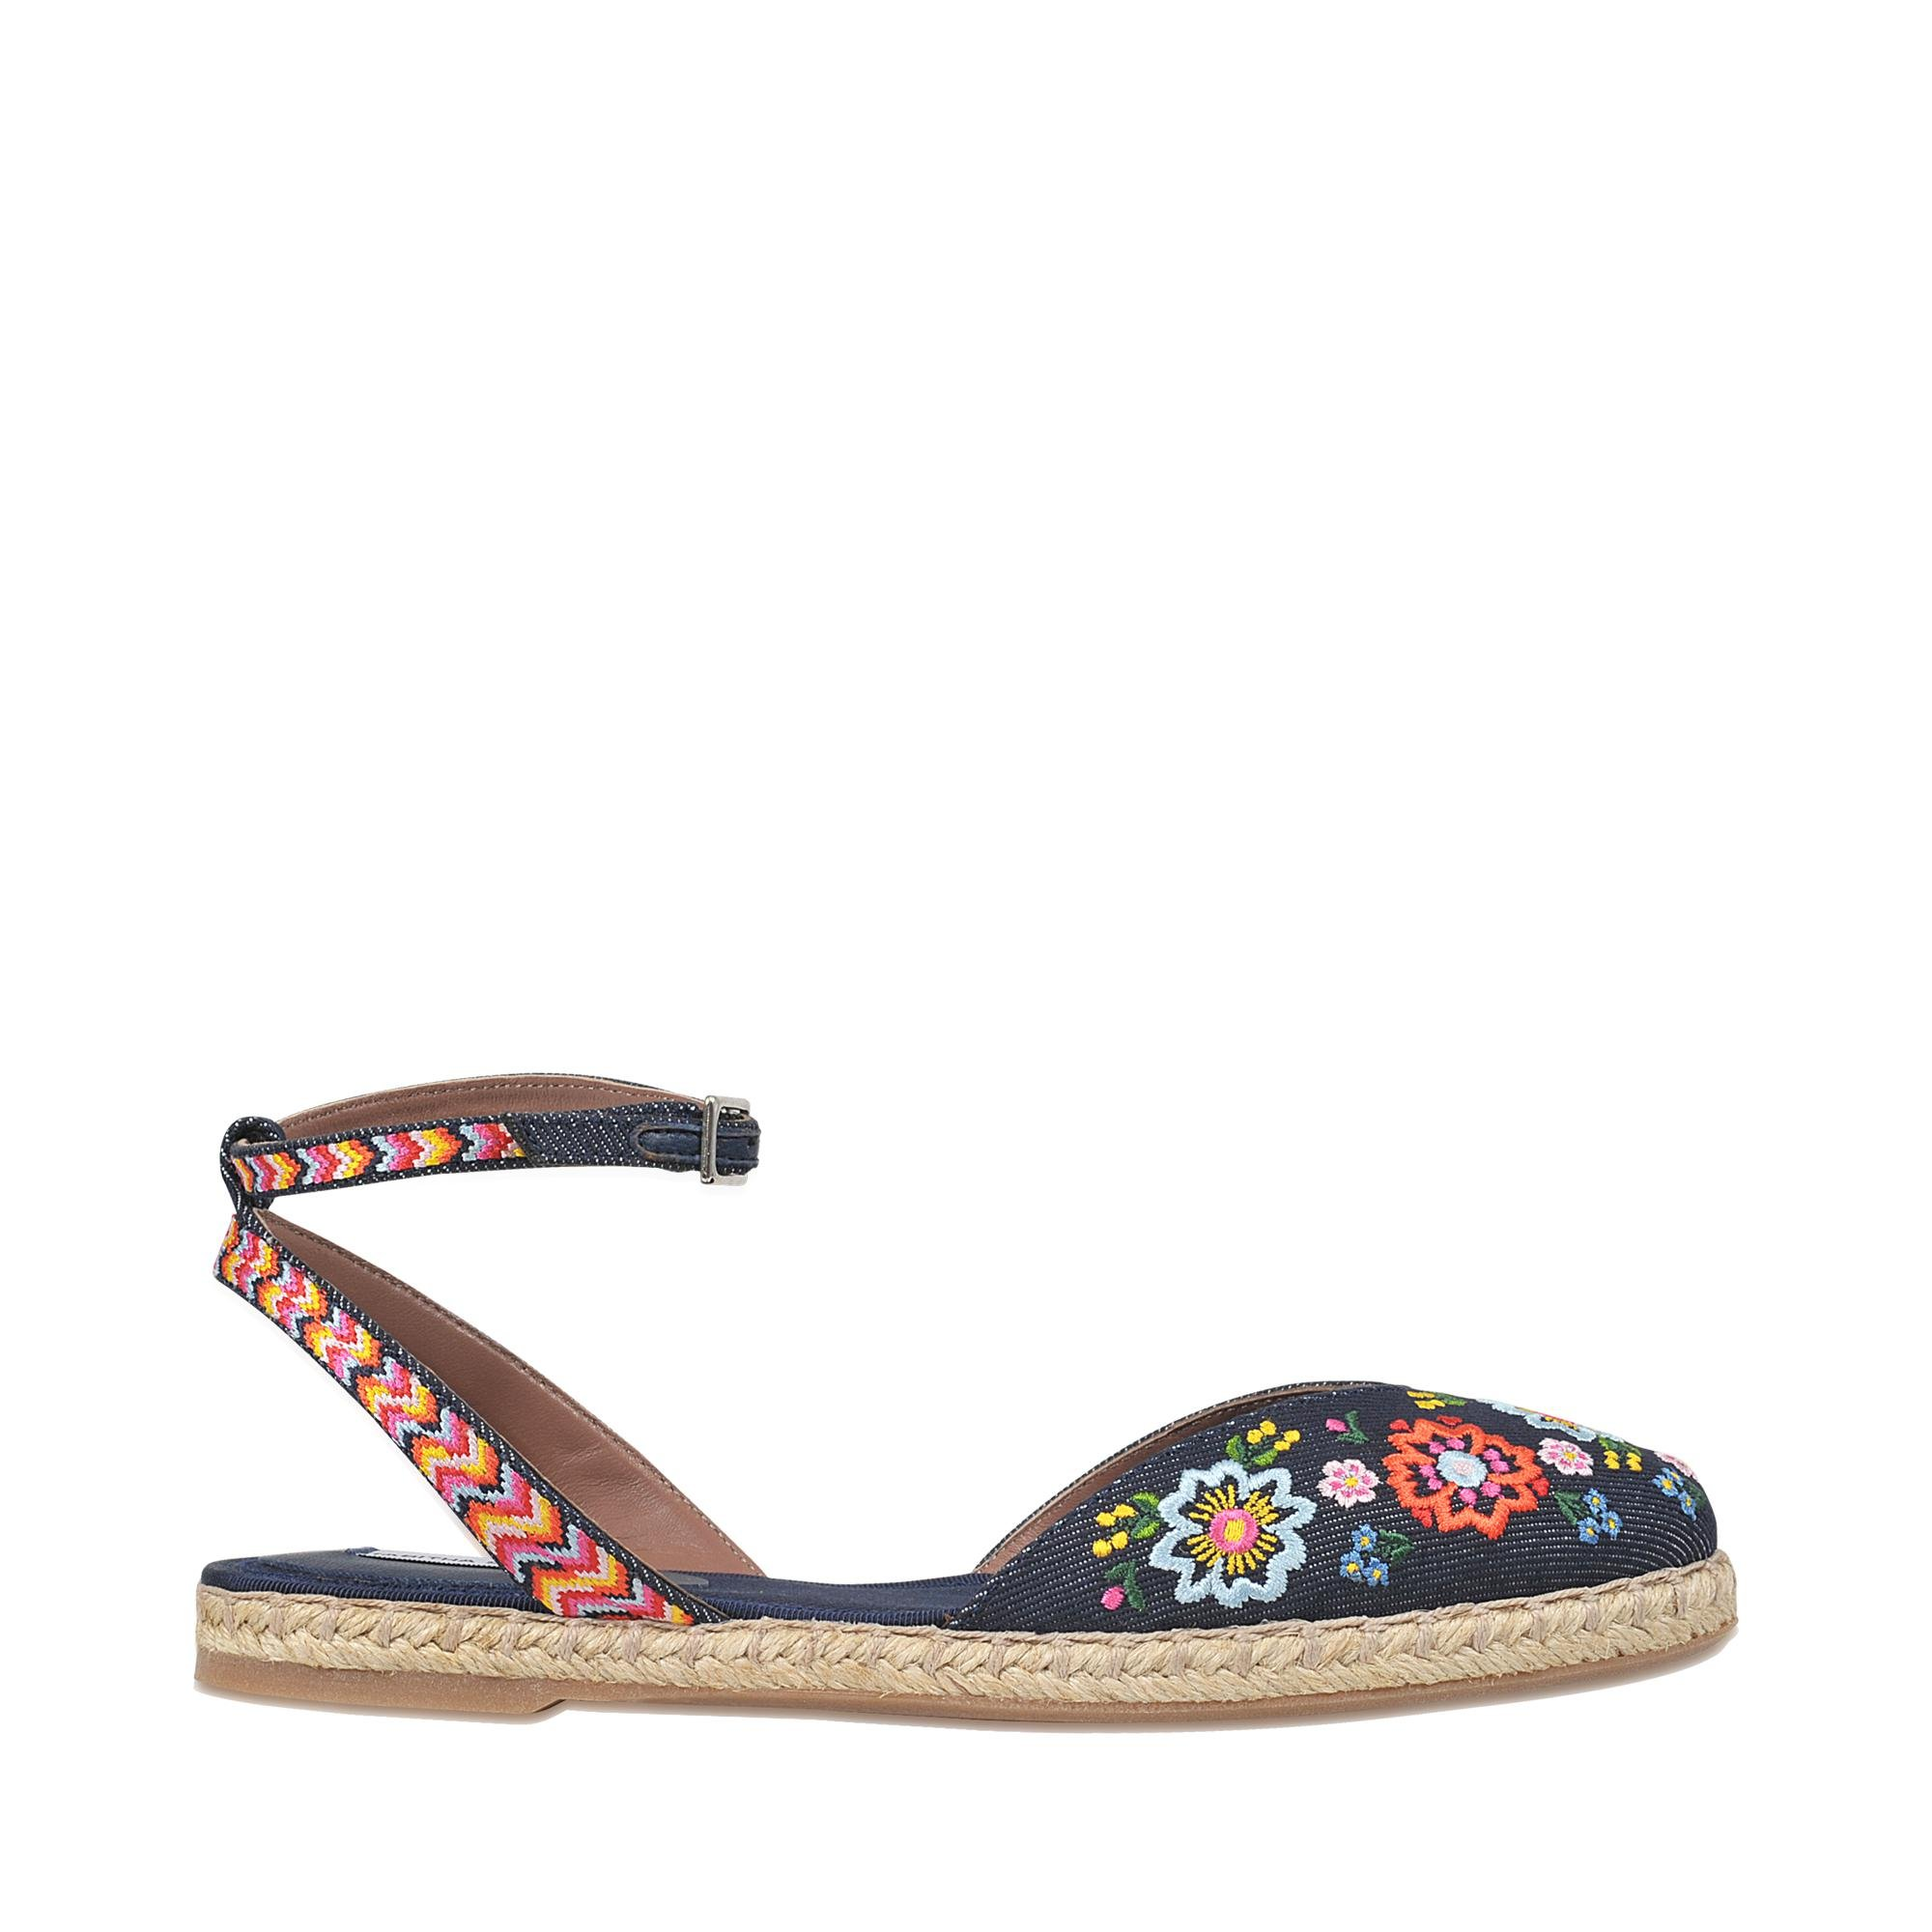 Dotty festival floral espadrille Tabitha Simmons Buy Cheap Big Discount How Much Cheap Price Outlet Sale Online IB5j5cWoE